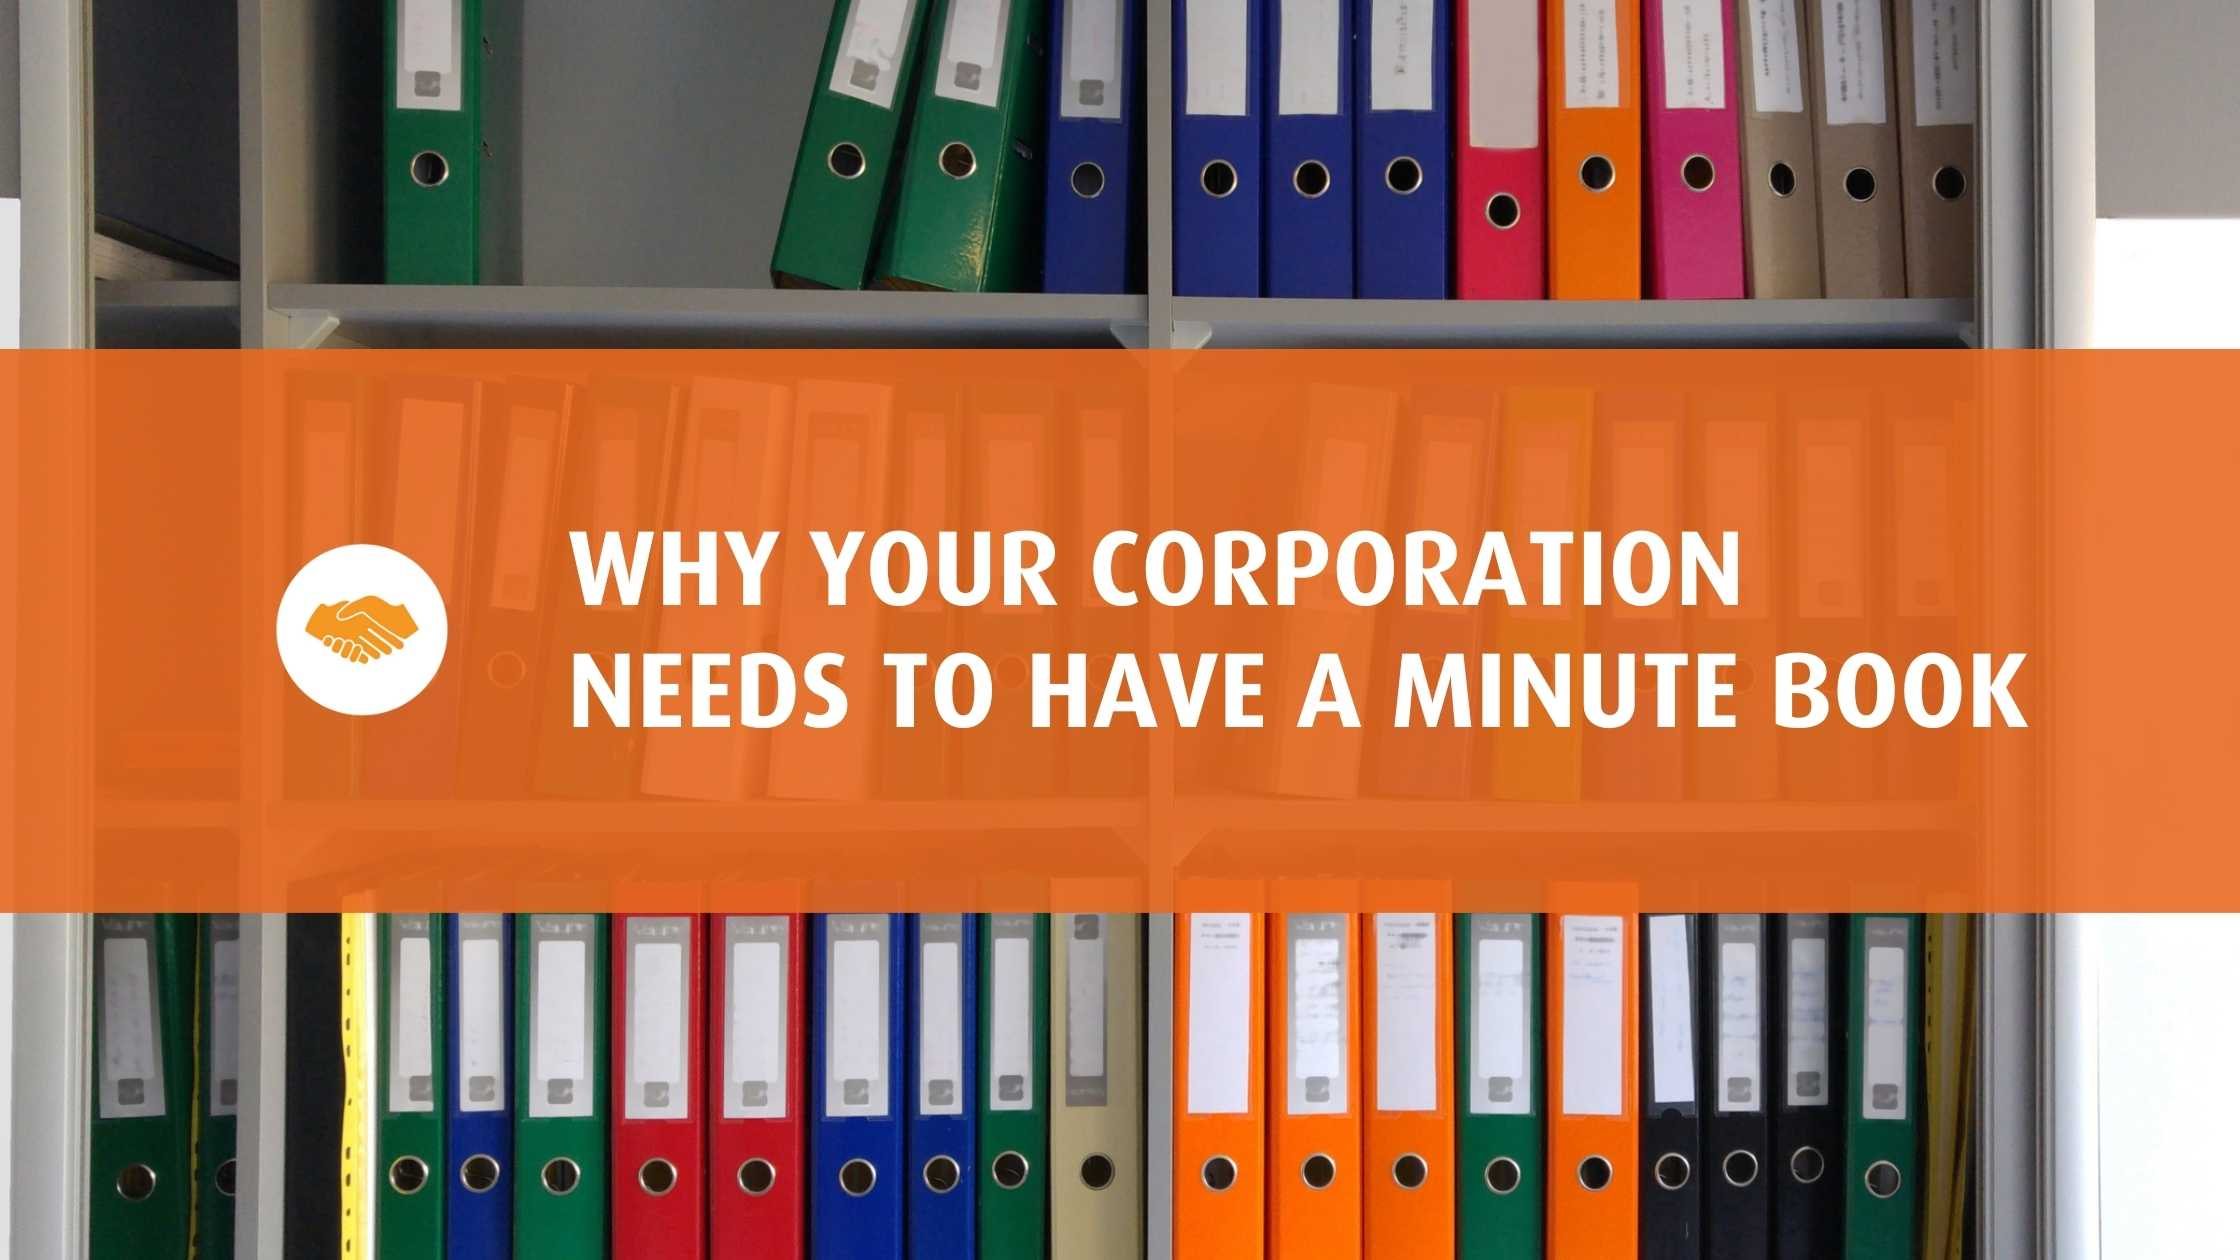 Why Your Corporation Needs to Have A Minute Book Stringam Grande Prairie Lethbridge Medicine Hat Fort McMurray